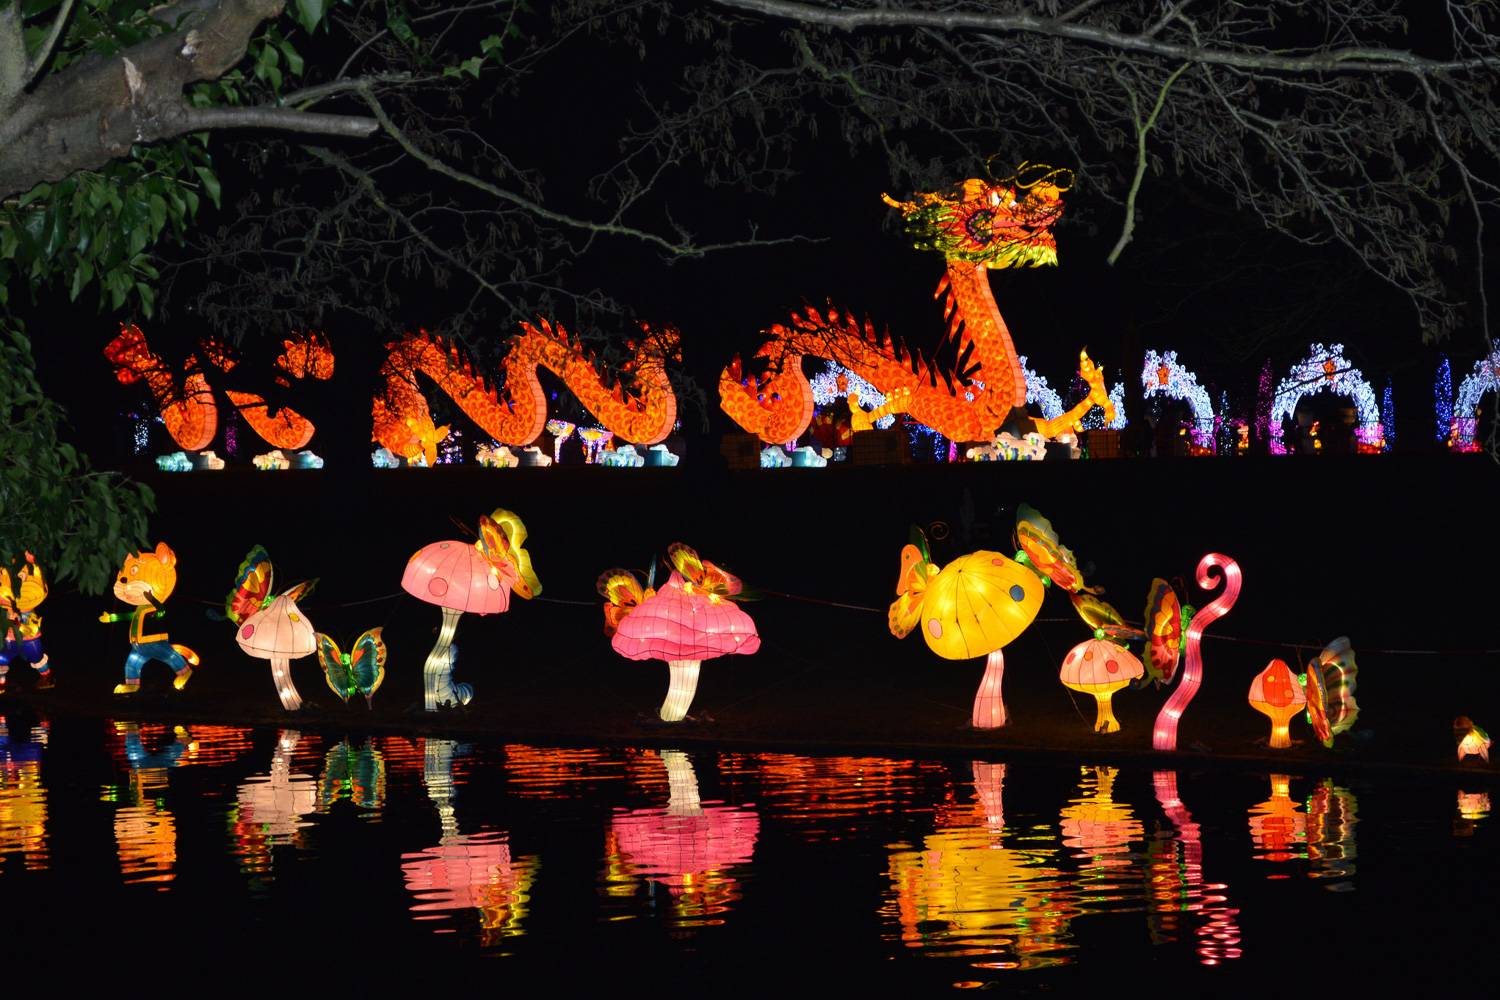 Image of lanterns shaped like dragons and mushrooms in the Chiswick Gardens Magical Lantern Festival.